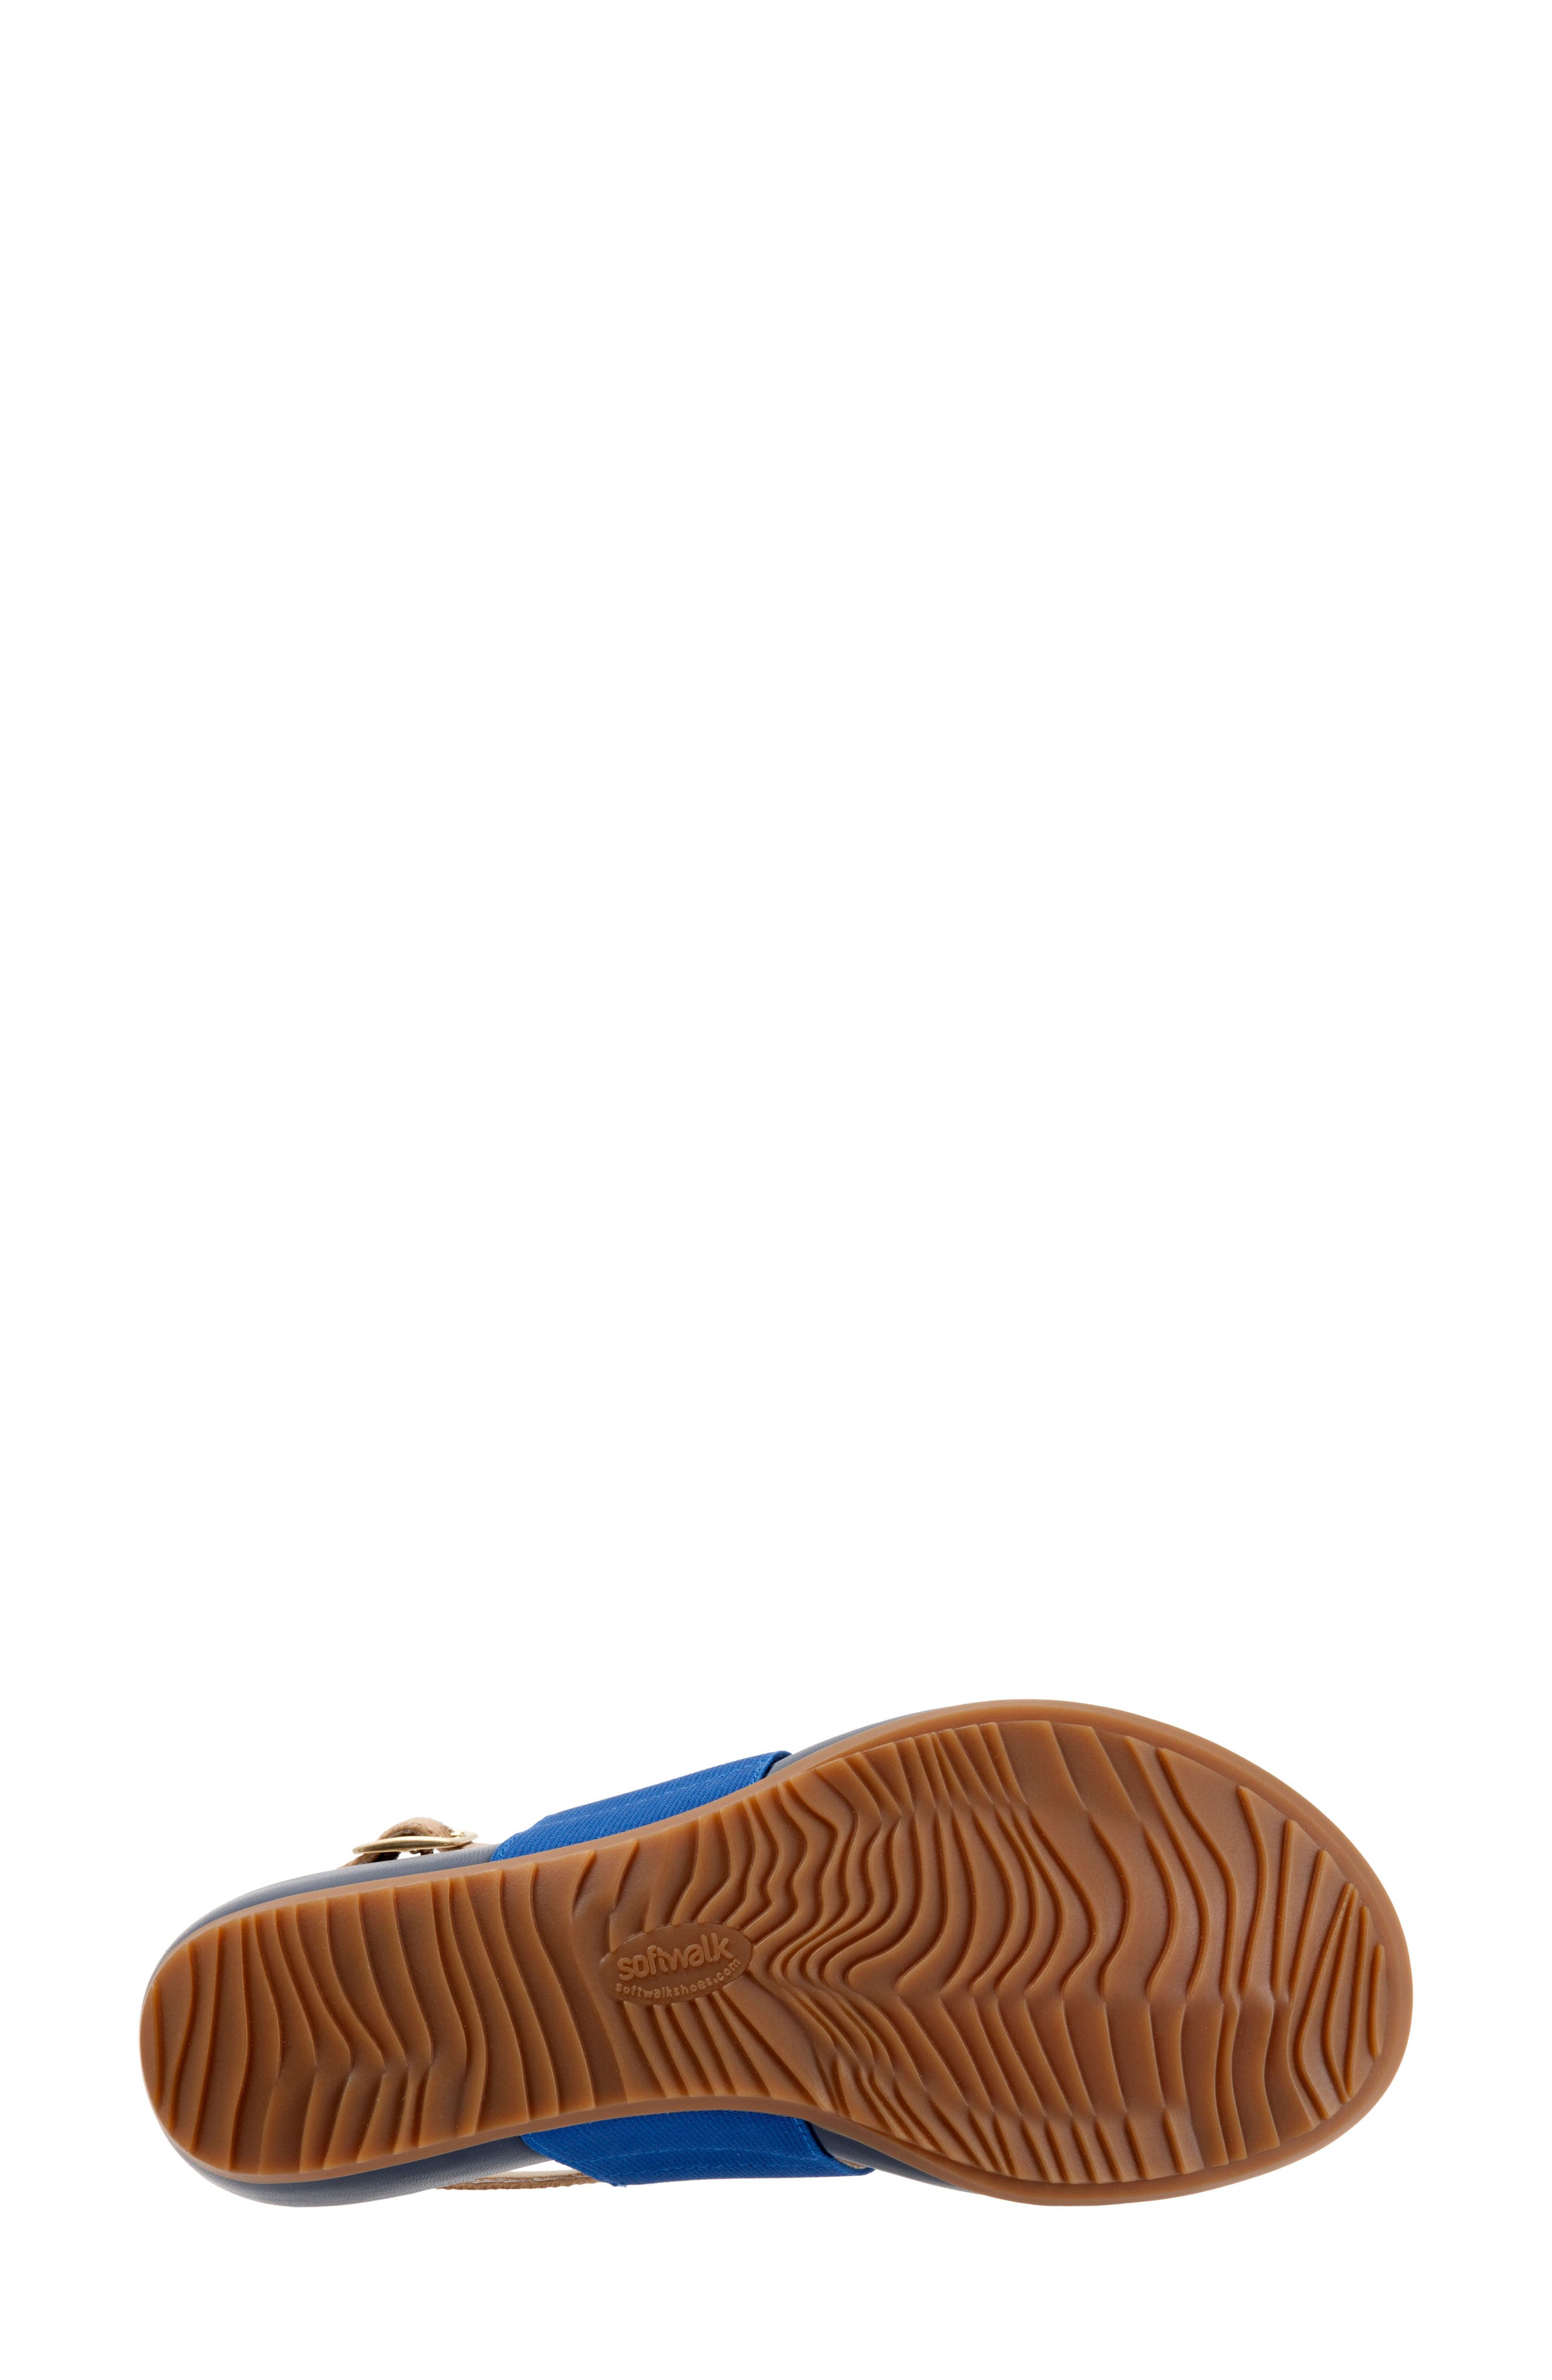 Daytona Sandal,                             Alternate thumbnail 6, color,                             Navy/ Tan Leather